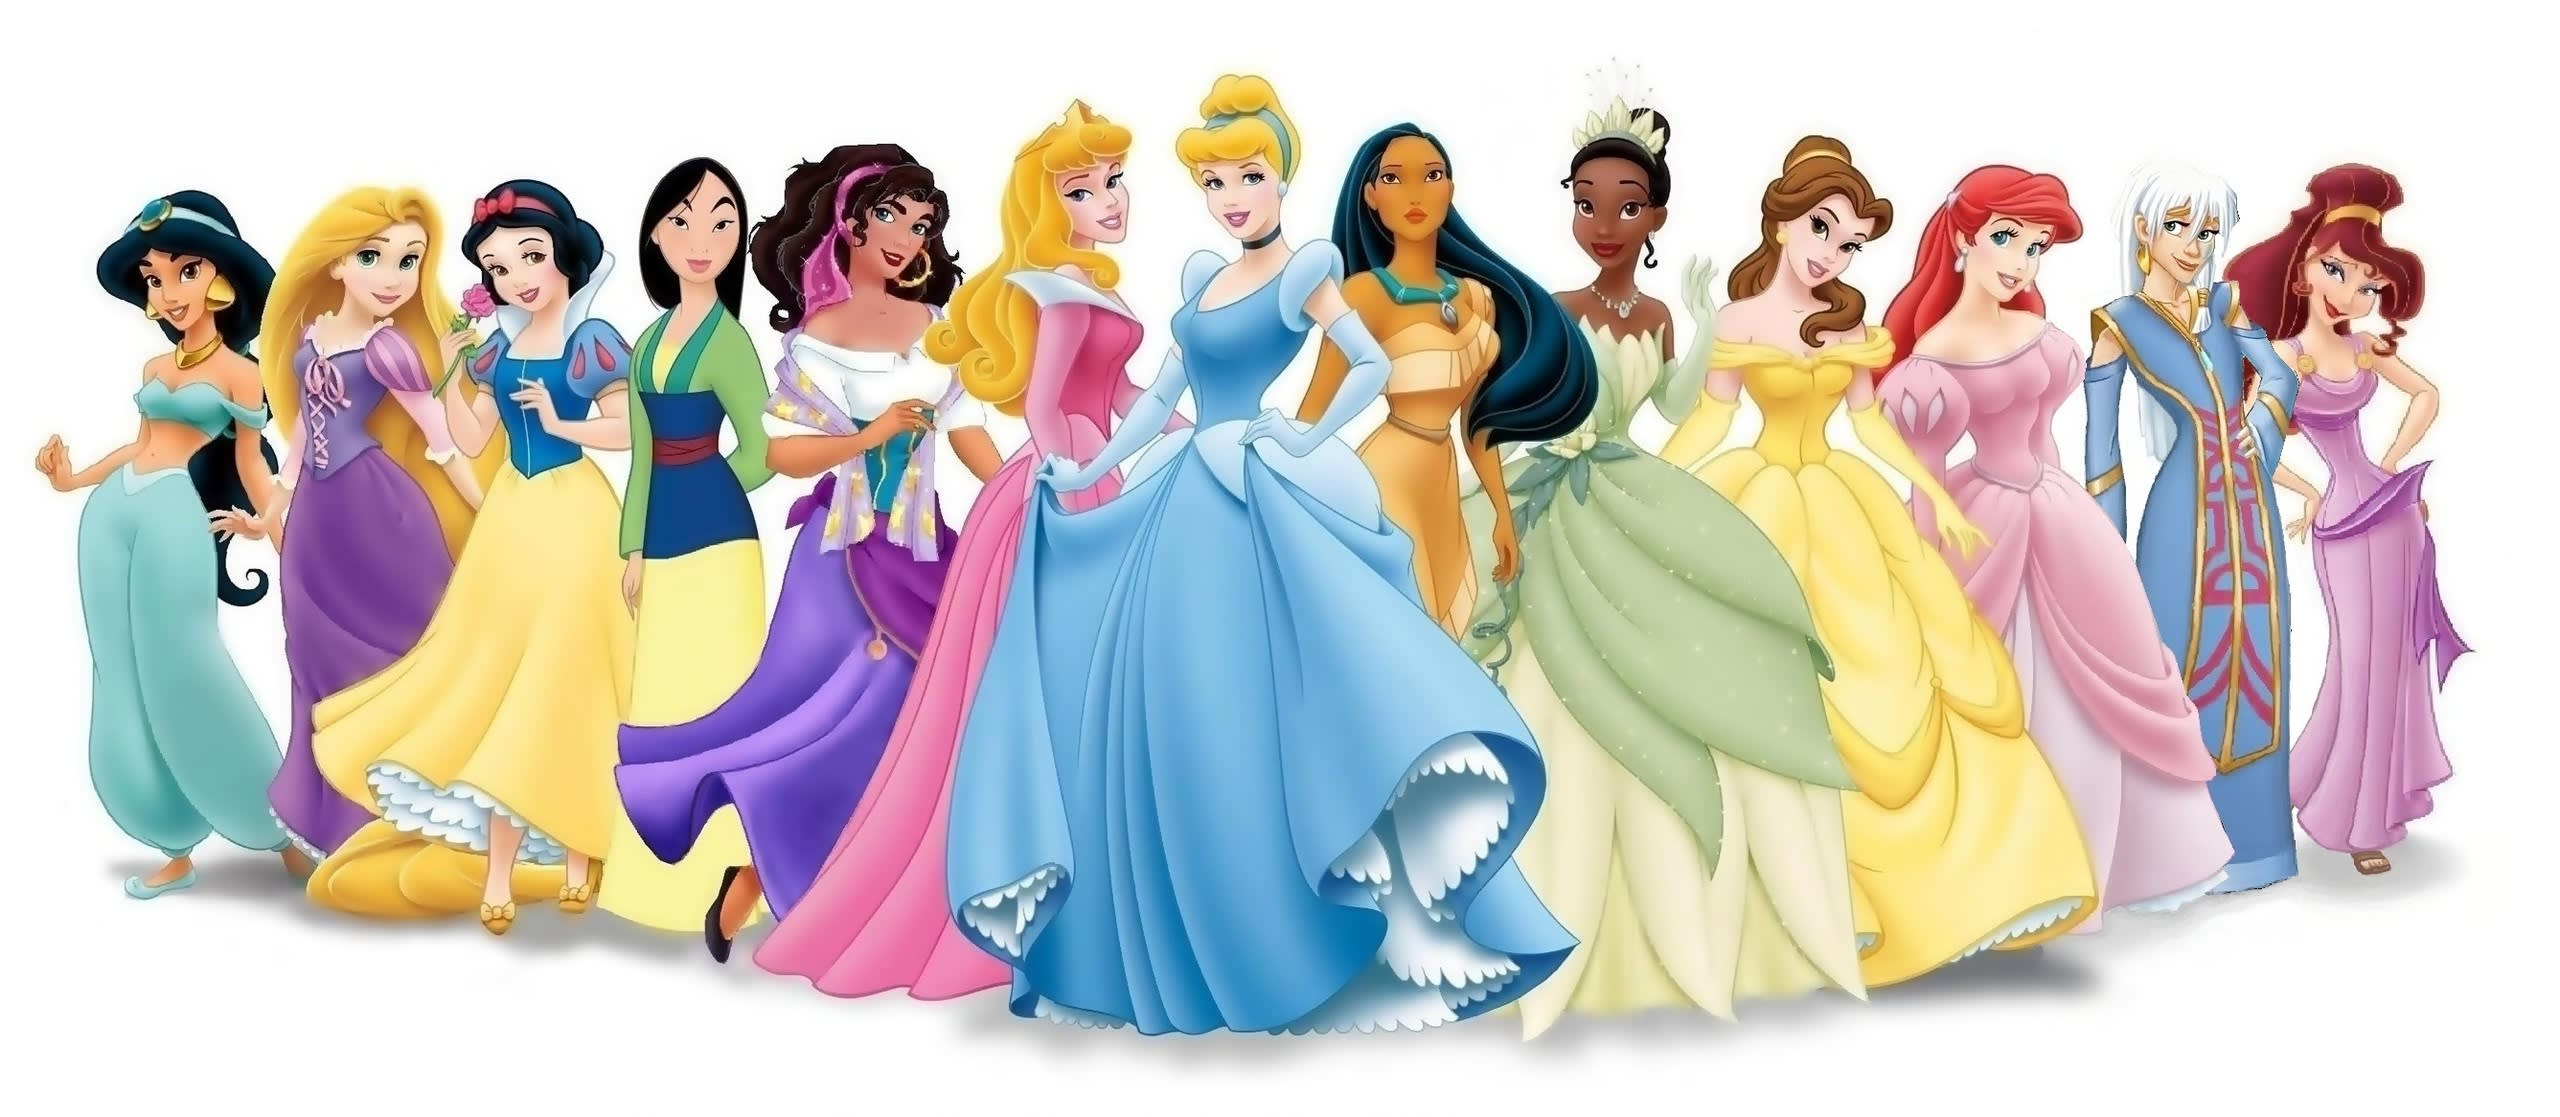 15 Characters Who Aren T On The Official Disney Princess List But Should Be